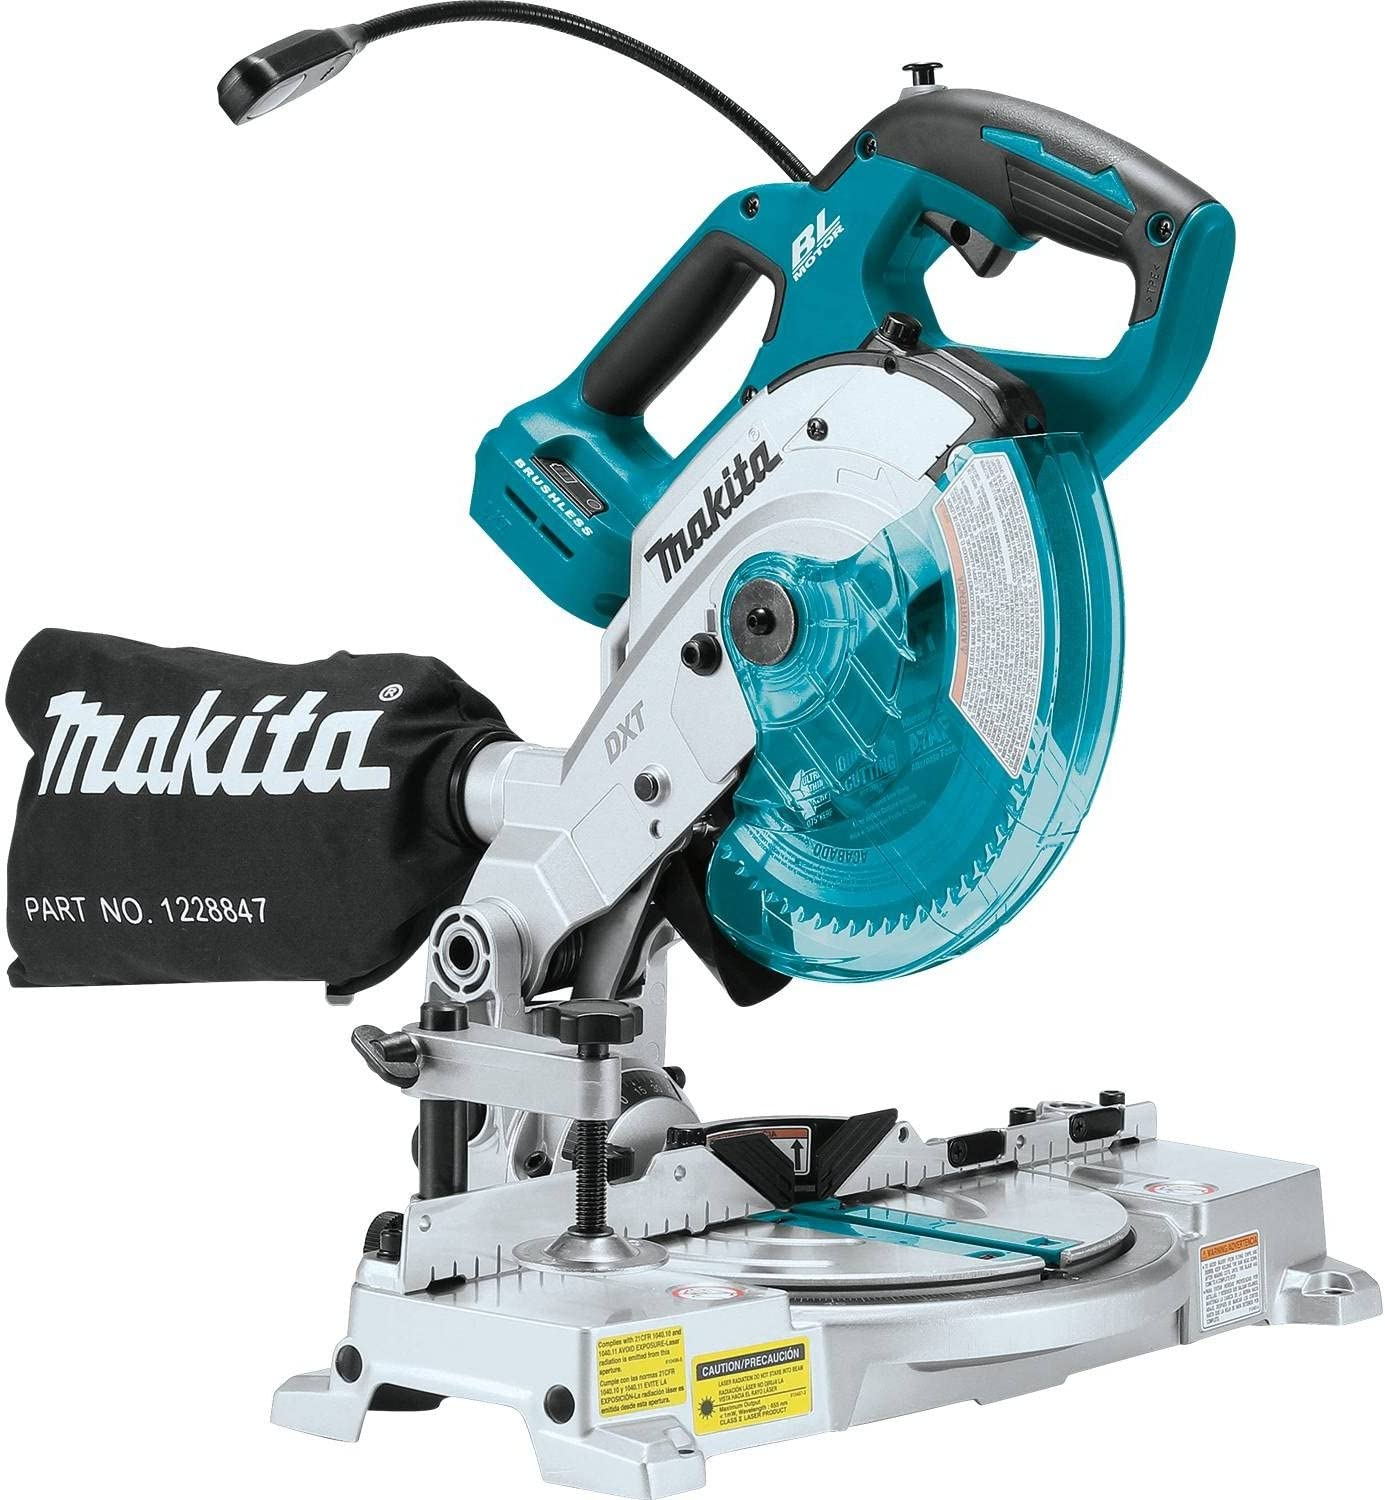 Makita XSL05Z 18V LXT Compound Miter Saw